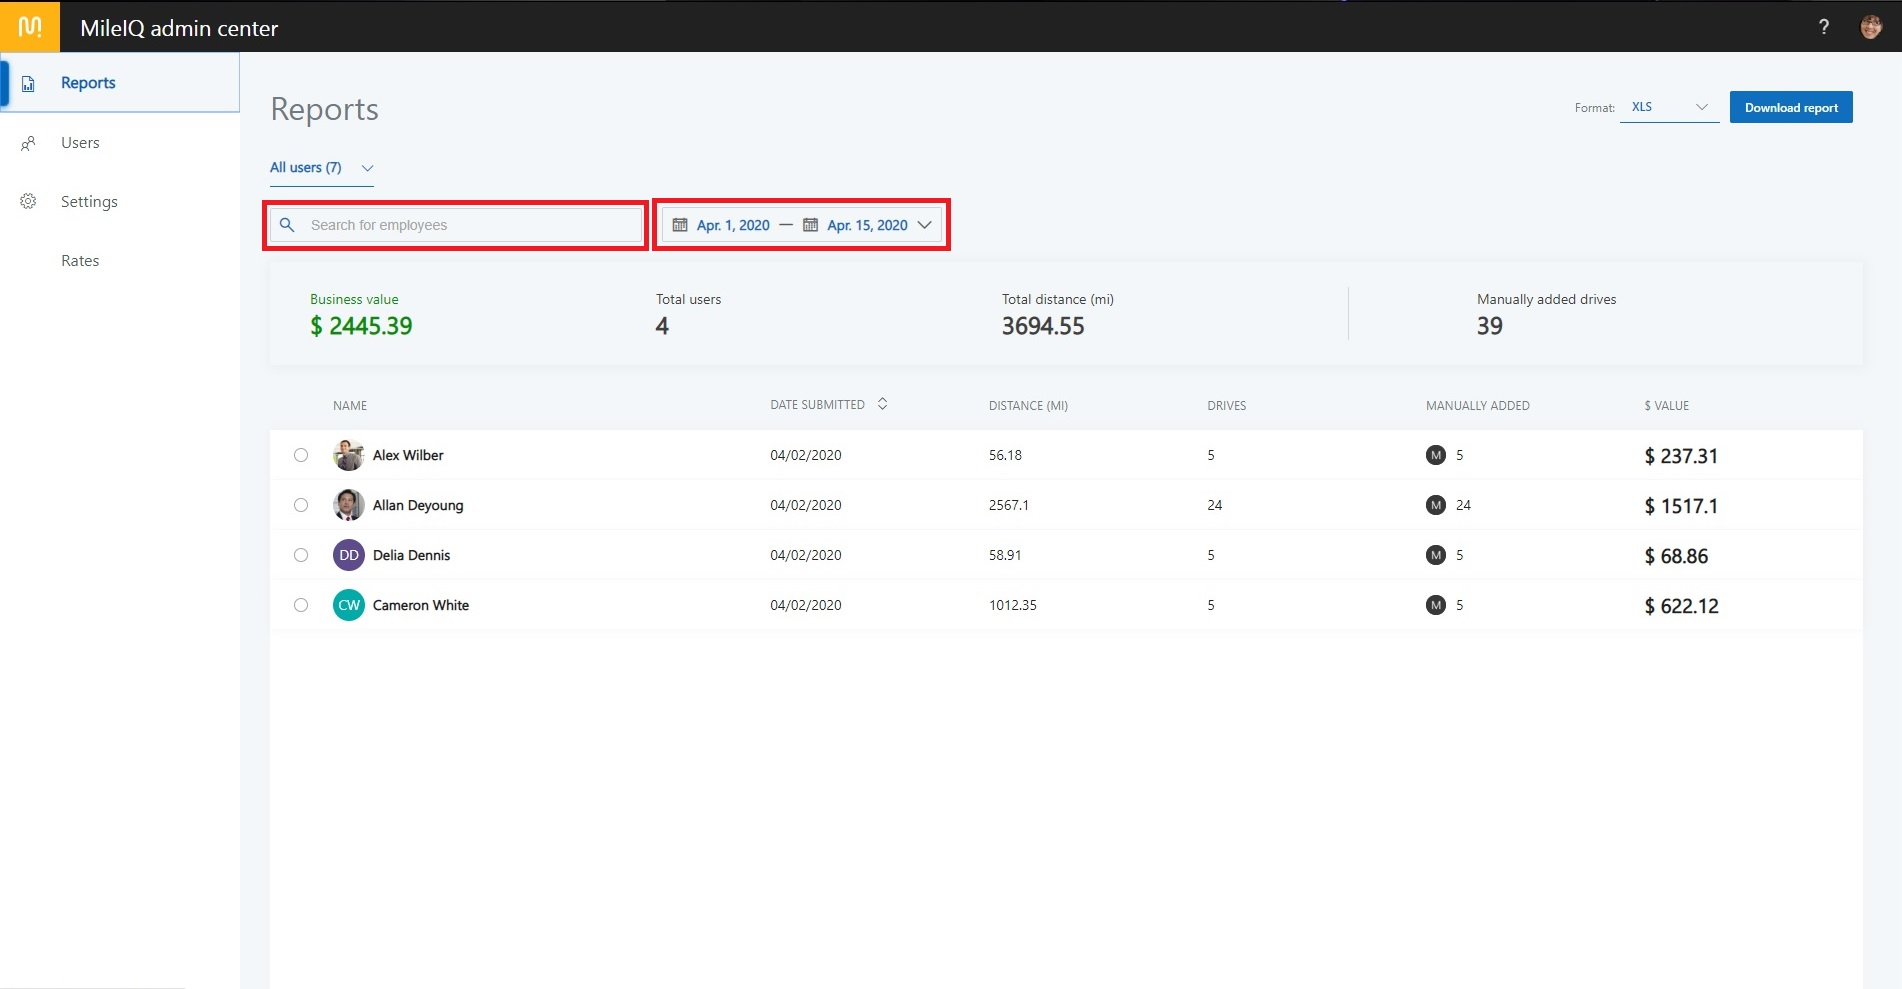 A screenshot of the MileIQ Admin Center displaying report filtering options